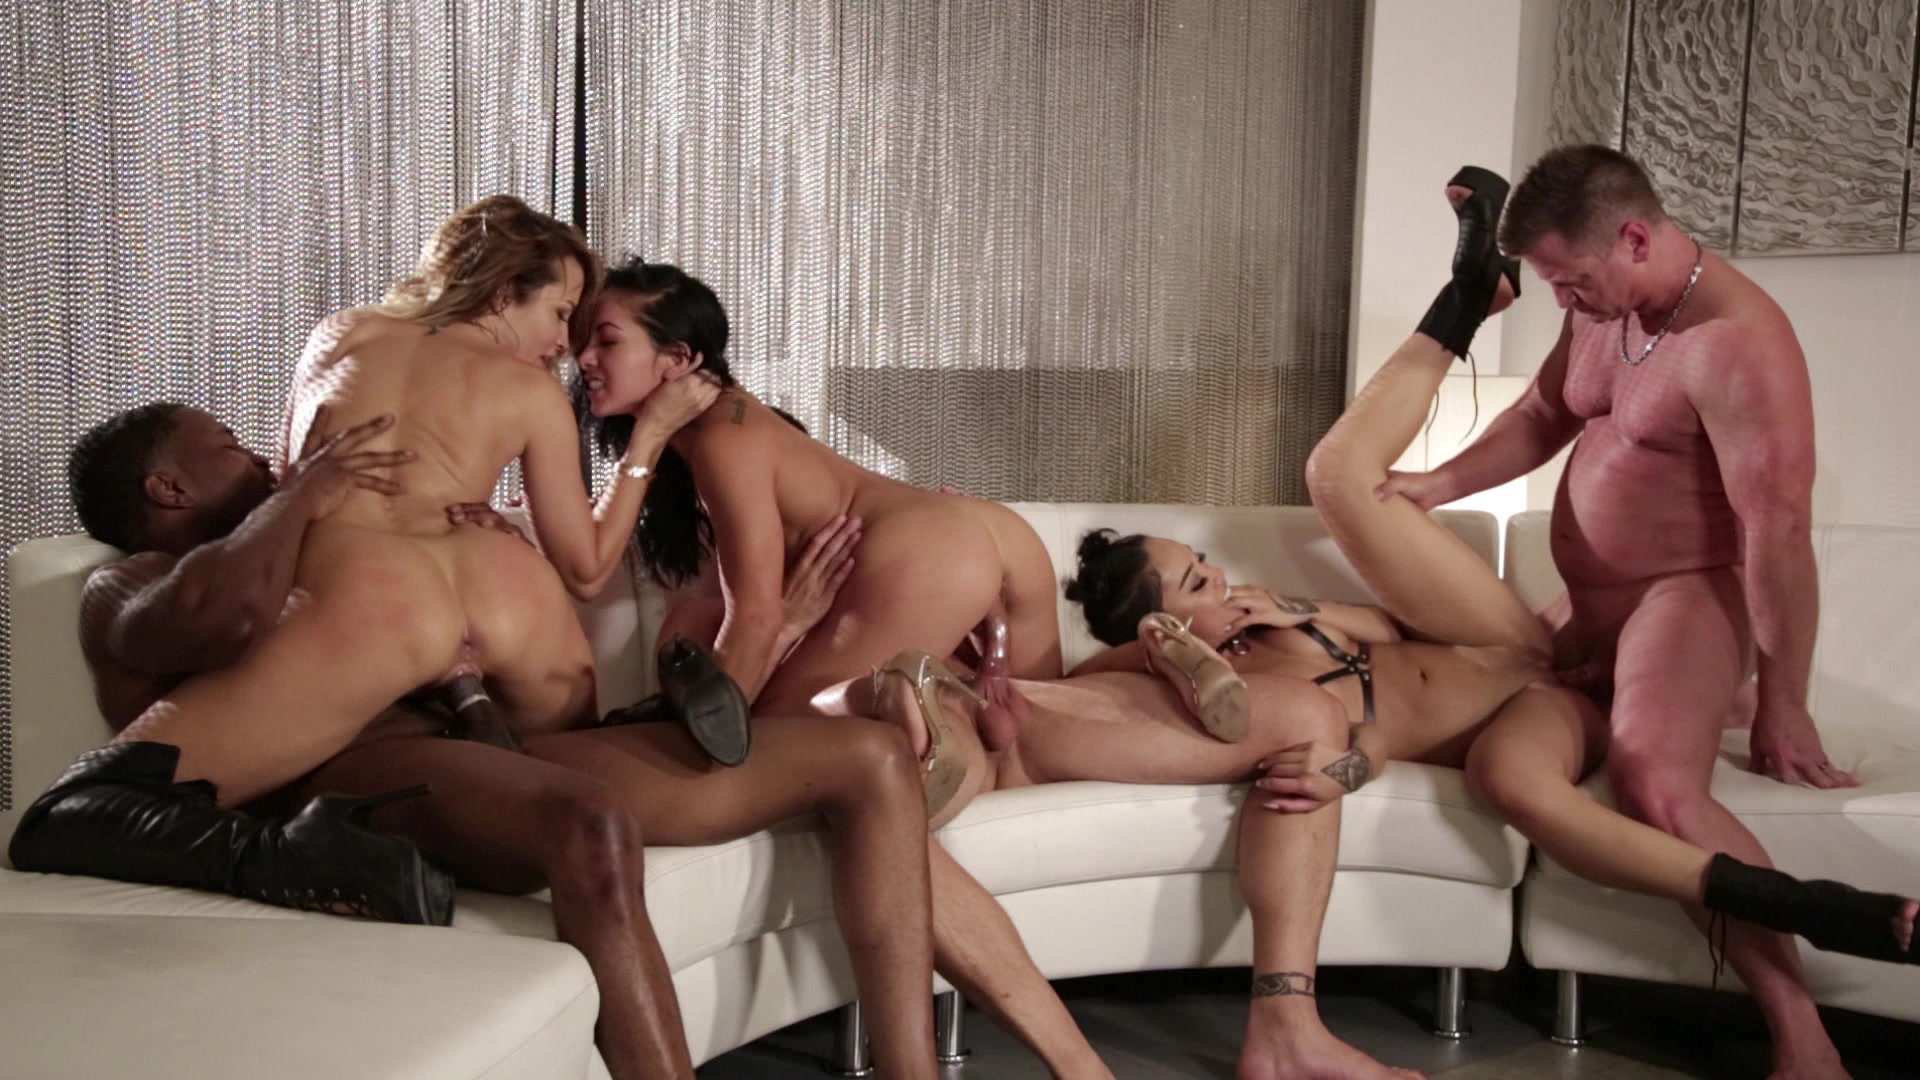 Scene with Jessica Drake, Morgan Lee and Honey Gold - image 18 out of 20